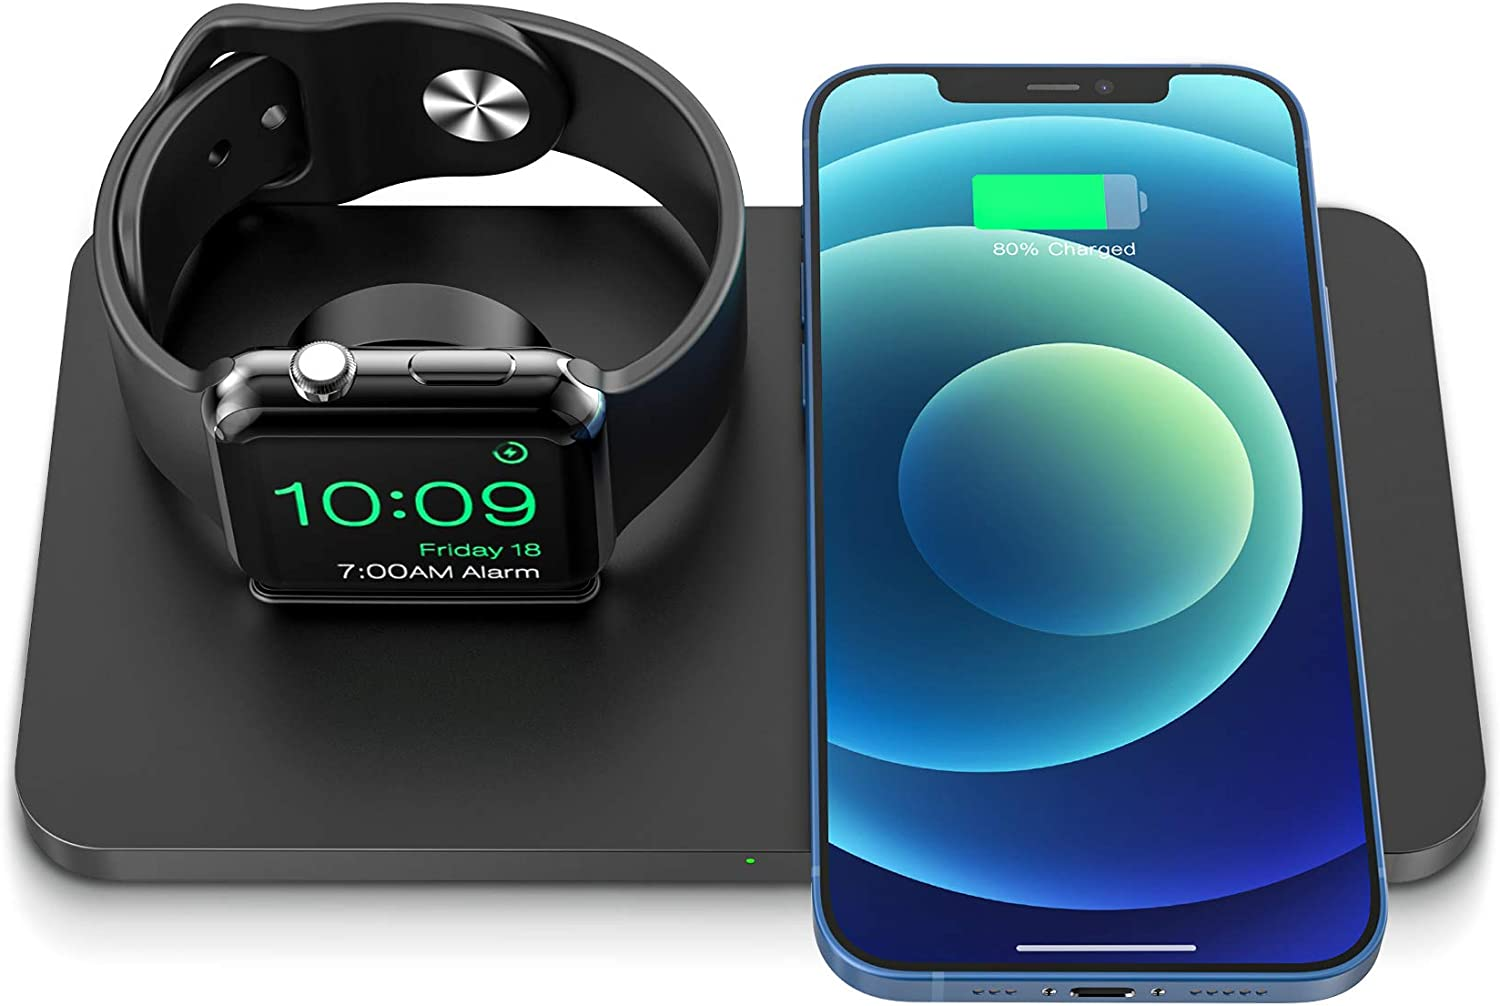 Wireless Charger, iSeneo 2 in 1 Dual Wireless Charging Pad with iWatch Stand for iWatch 6/5/4/3/2, 7.5W Wireless Charger for iPhone 12/11/11 Pro Max/XR/XS Max/XS/X/8, Airpods(No iWatch Charging Cable)